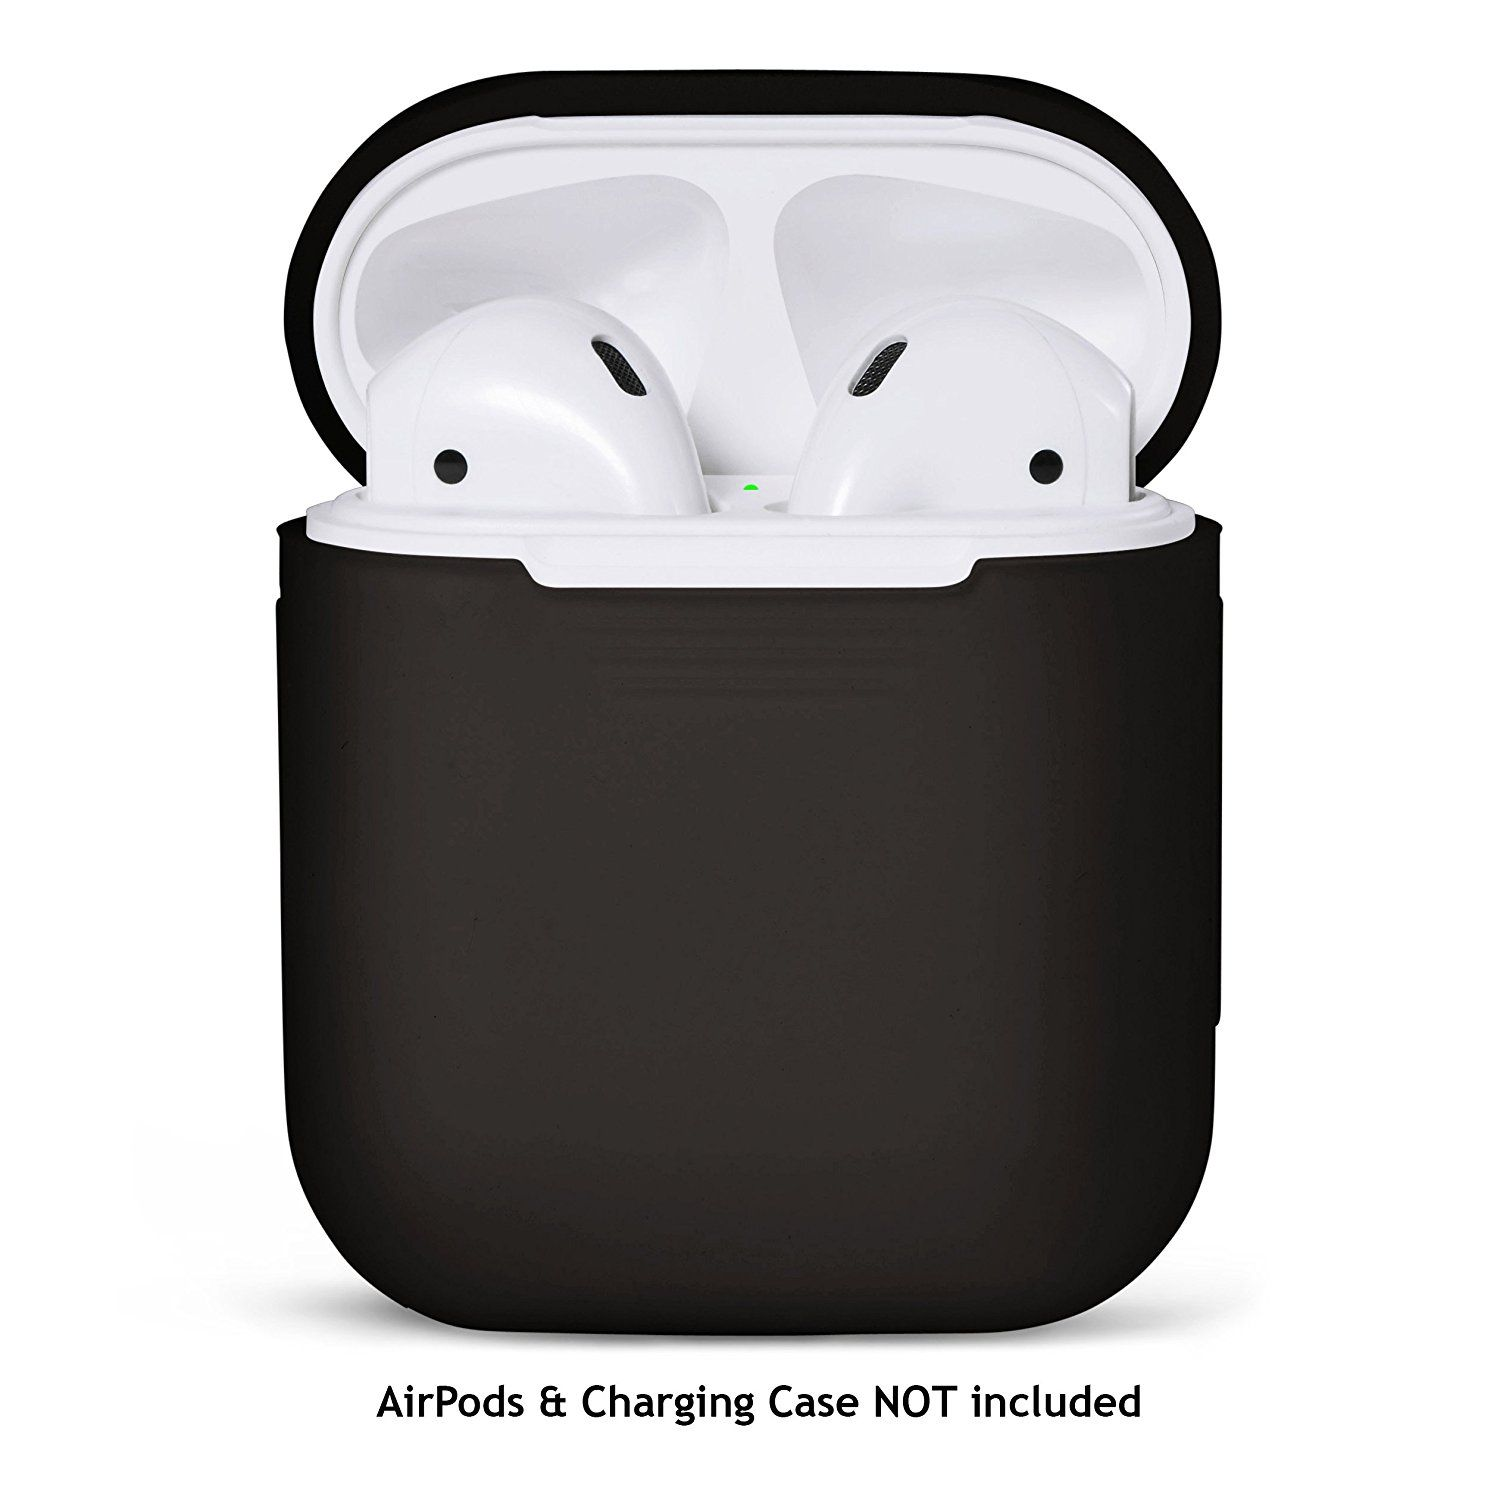 Podskinz Airpods Case 5 95 Silicone Cover Airpod Case Apple